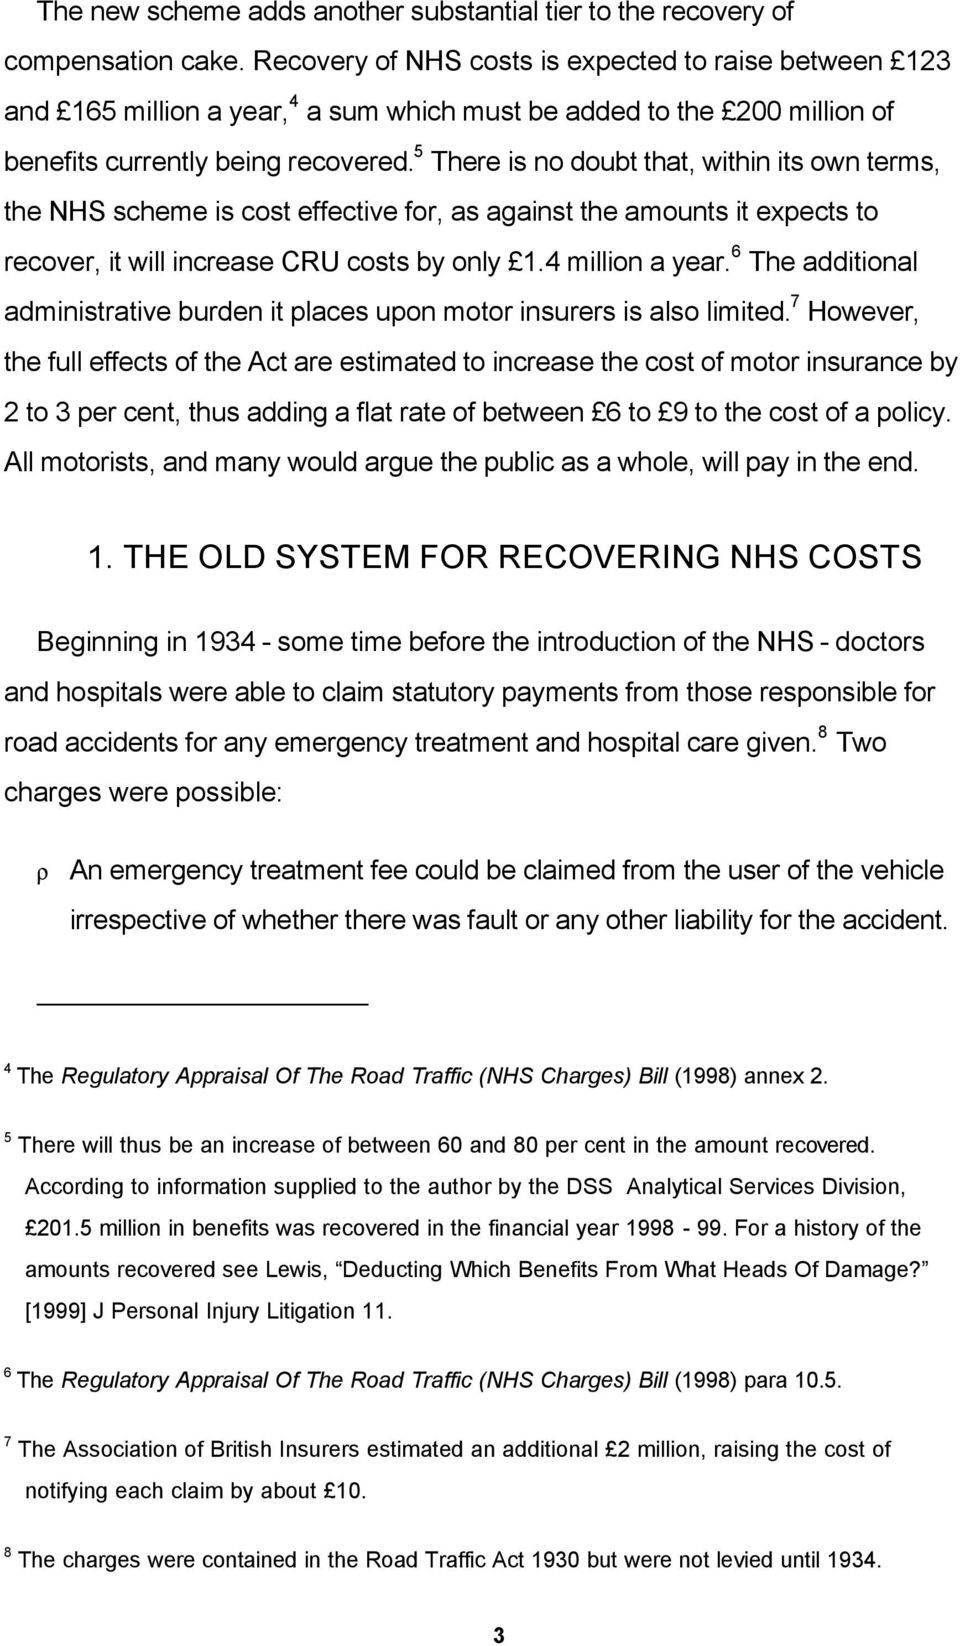 5 There is no doubt that, within its own terms, the NHS scheme is cost effective for, as against the amounts it expects to recover, it will increase CRU costs by only 1.4 million a year.